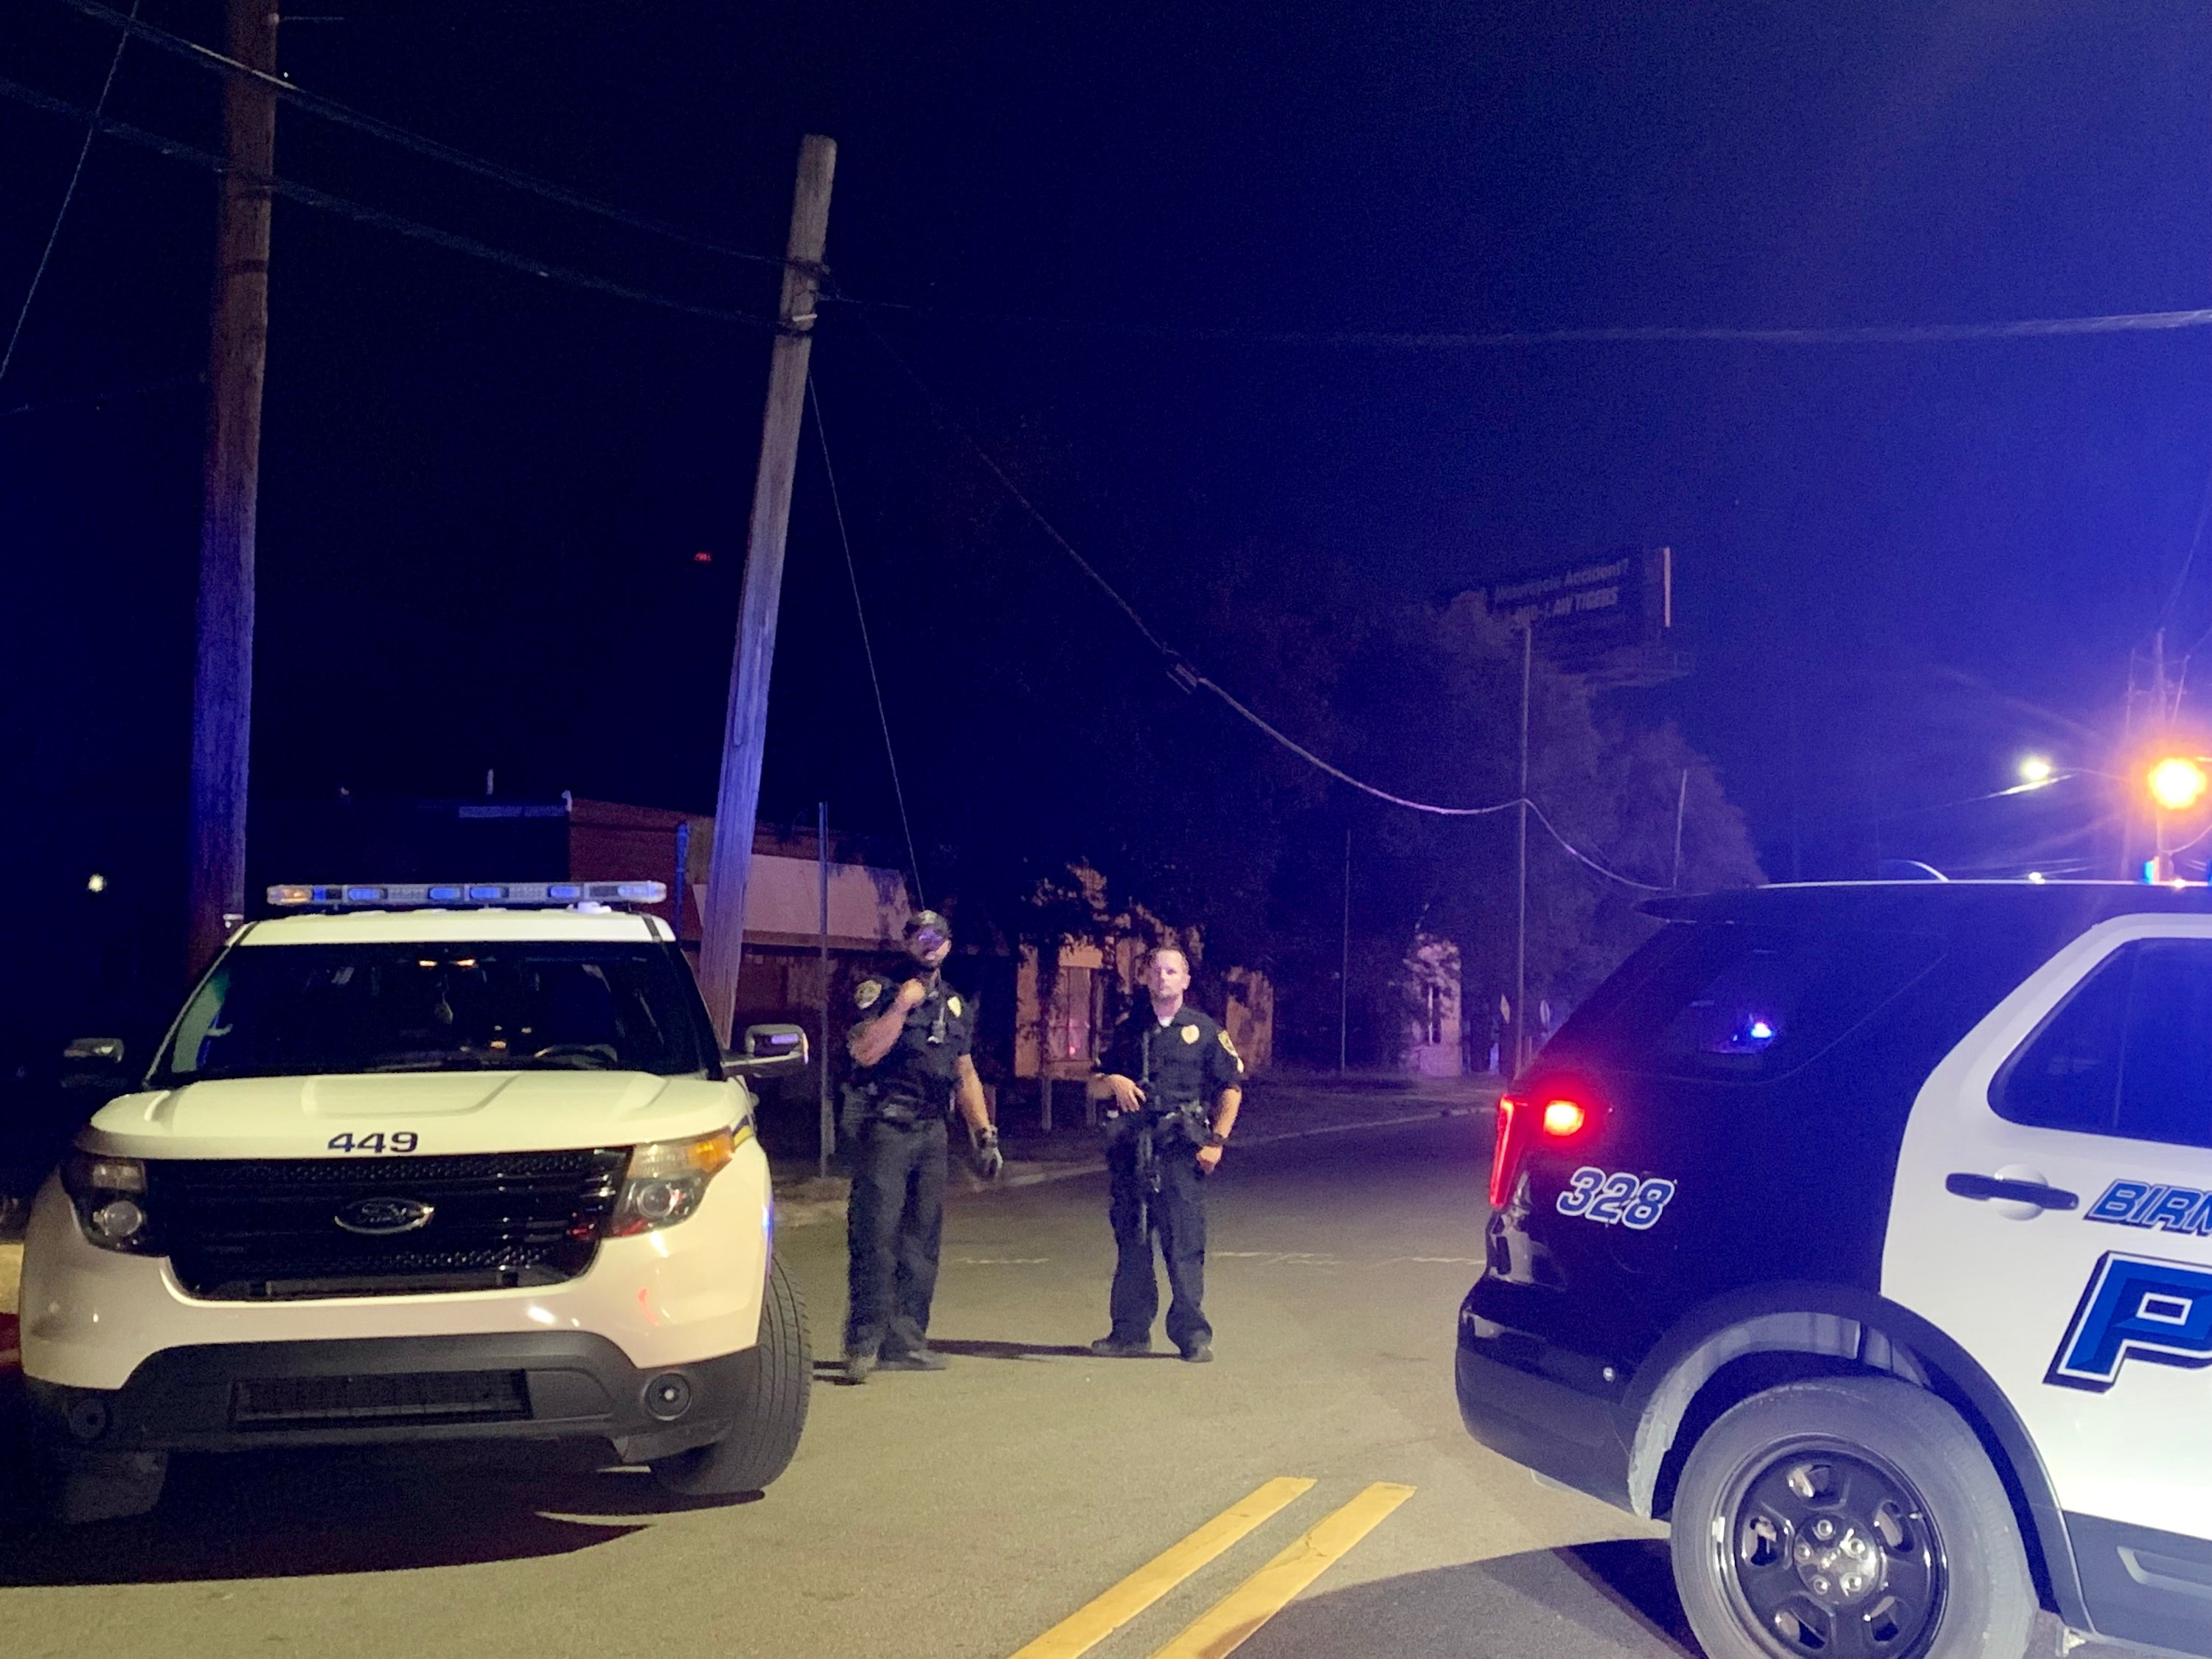 Manhunt suspect captured after shots fired at police in east Birmingham